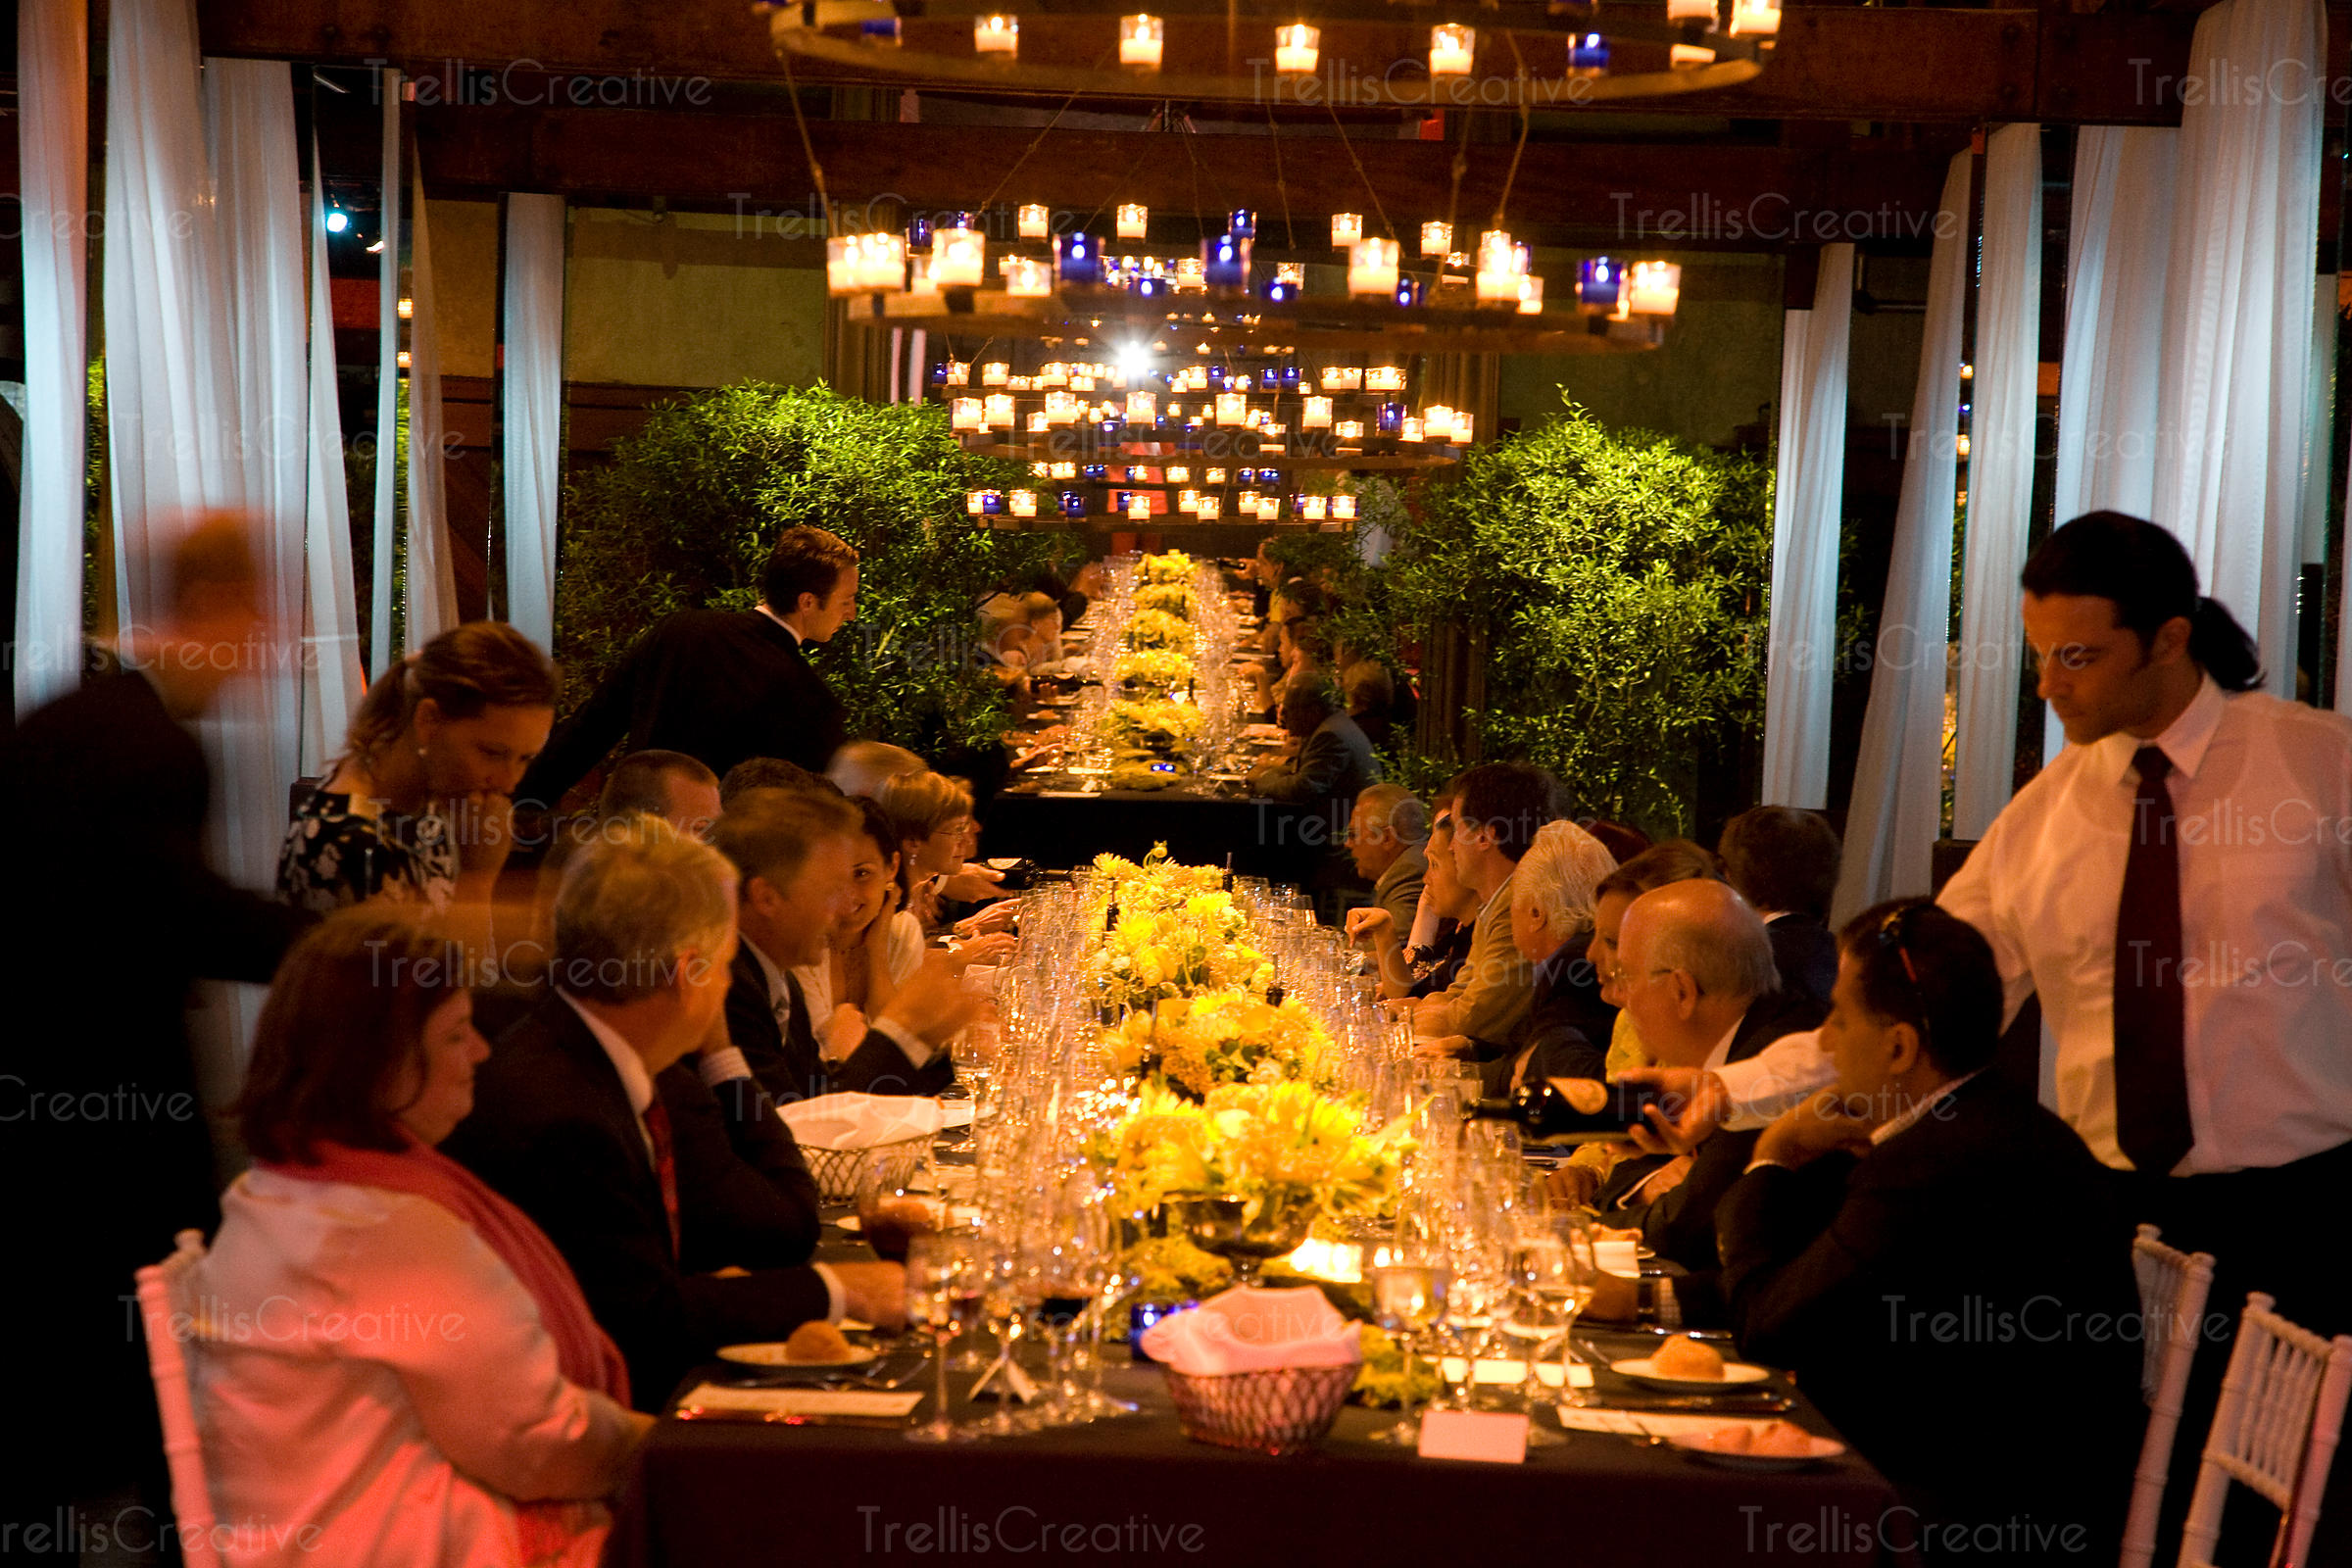 Guests seated at a long elegantly decorated table wait to be served